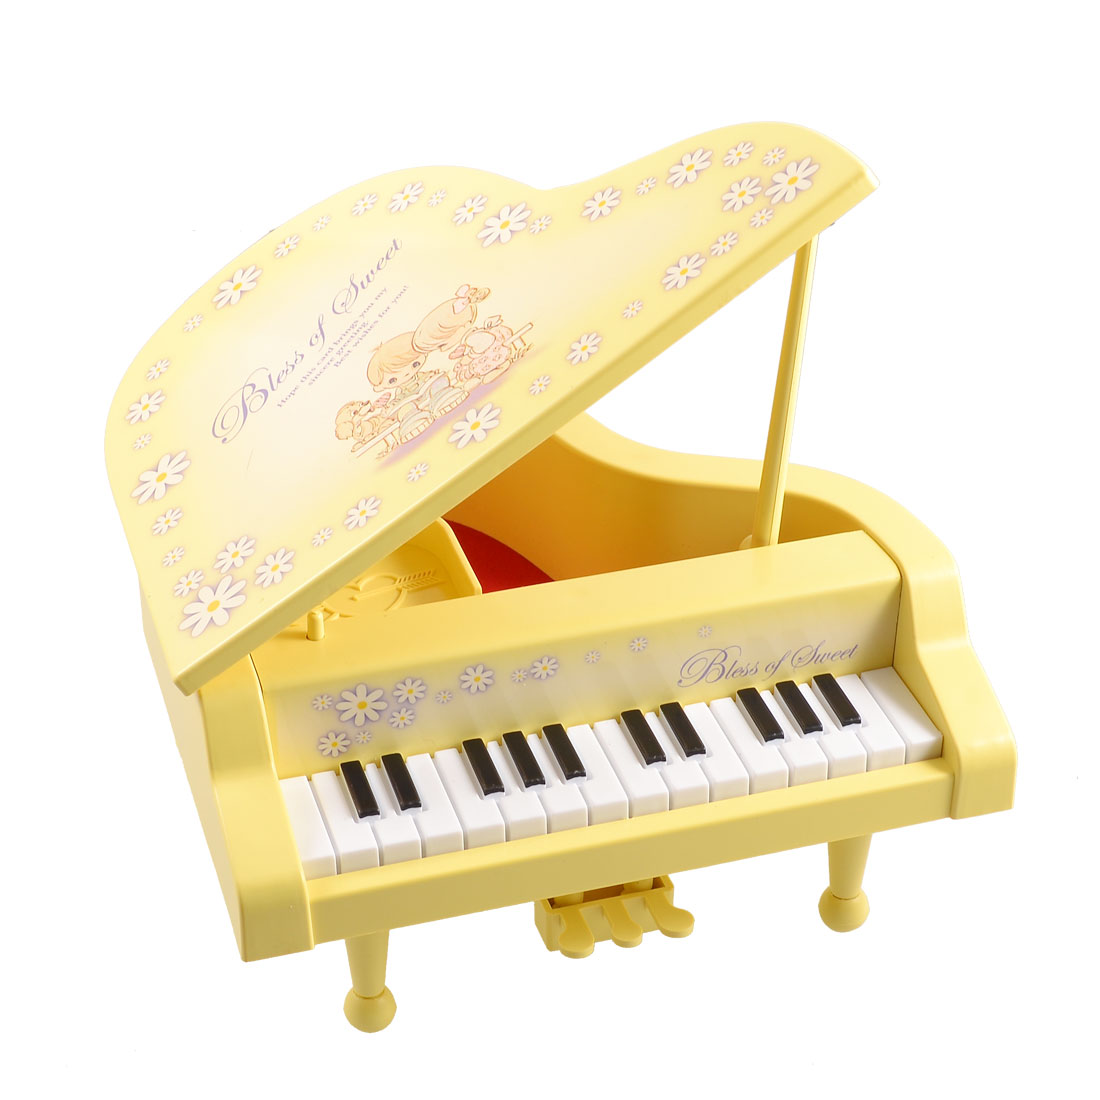 Plastic Piano Shaped Music Maker Box Case Yellow for Child